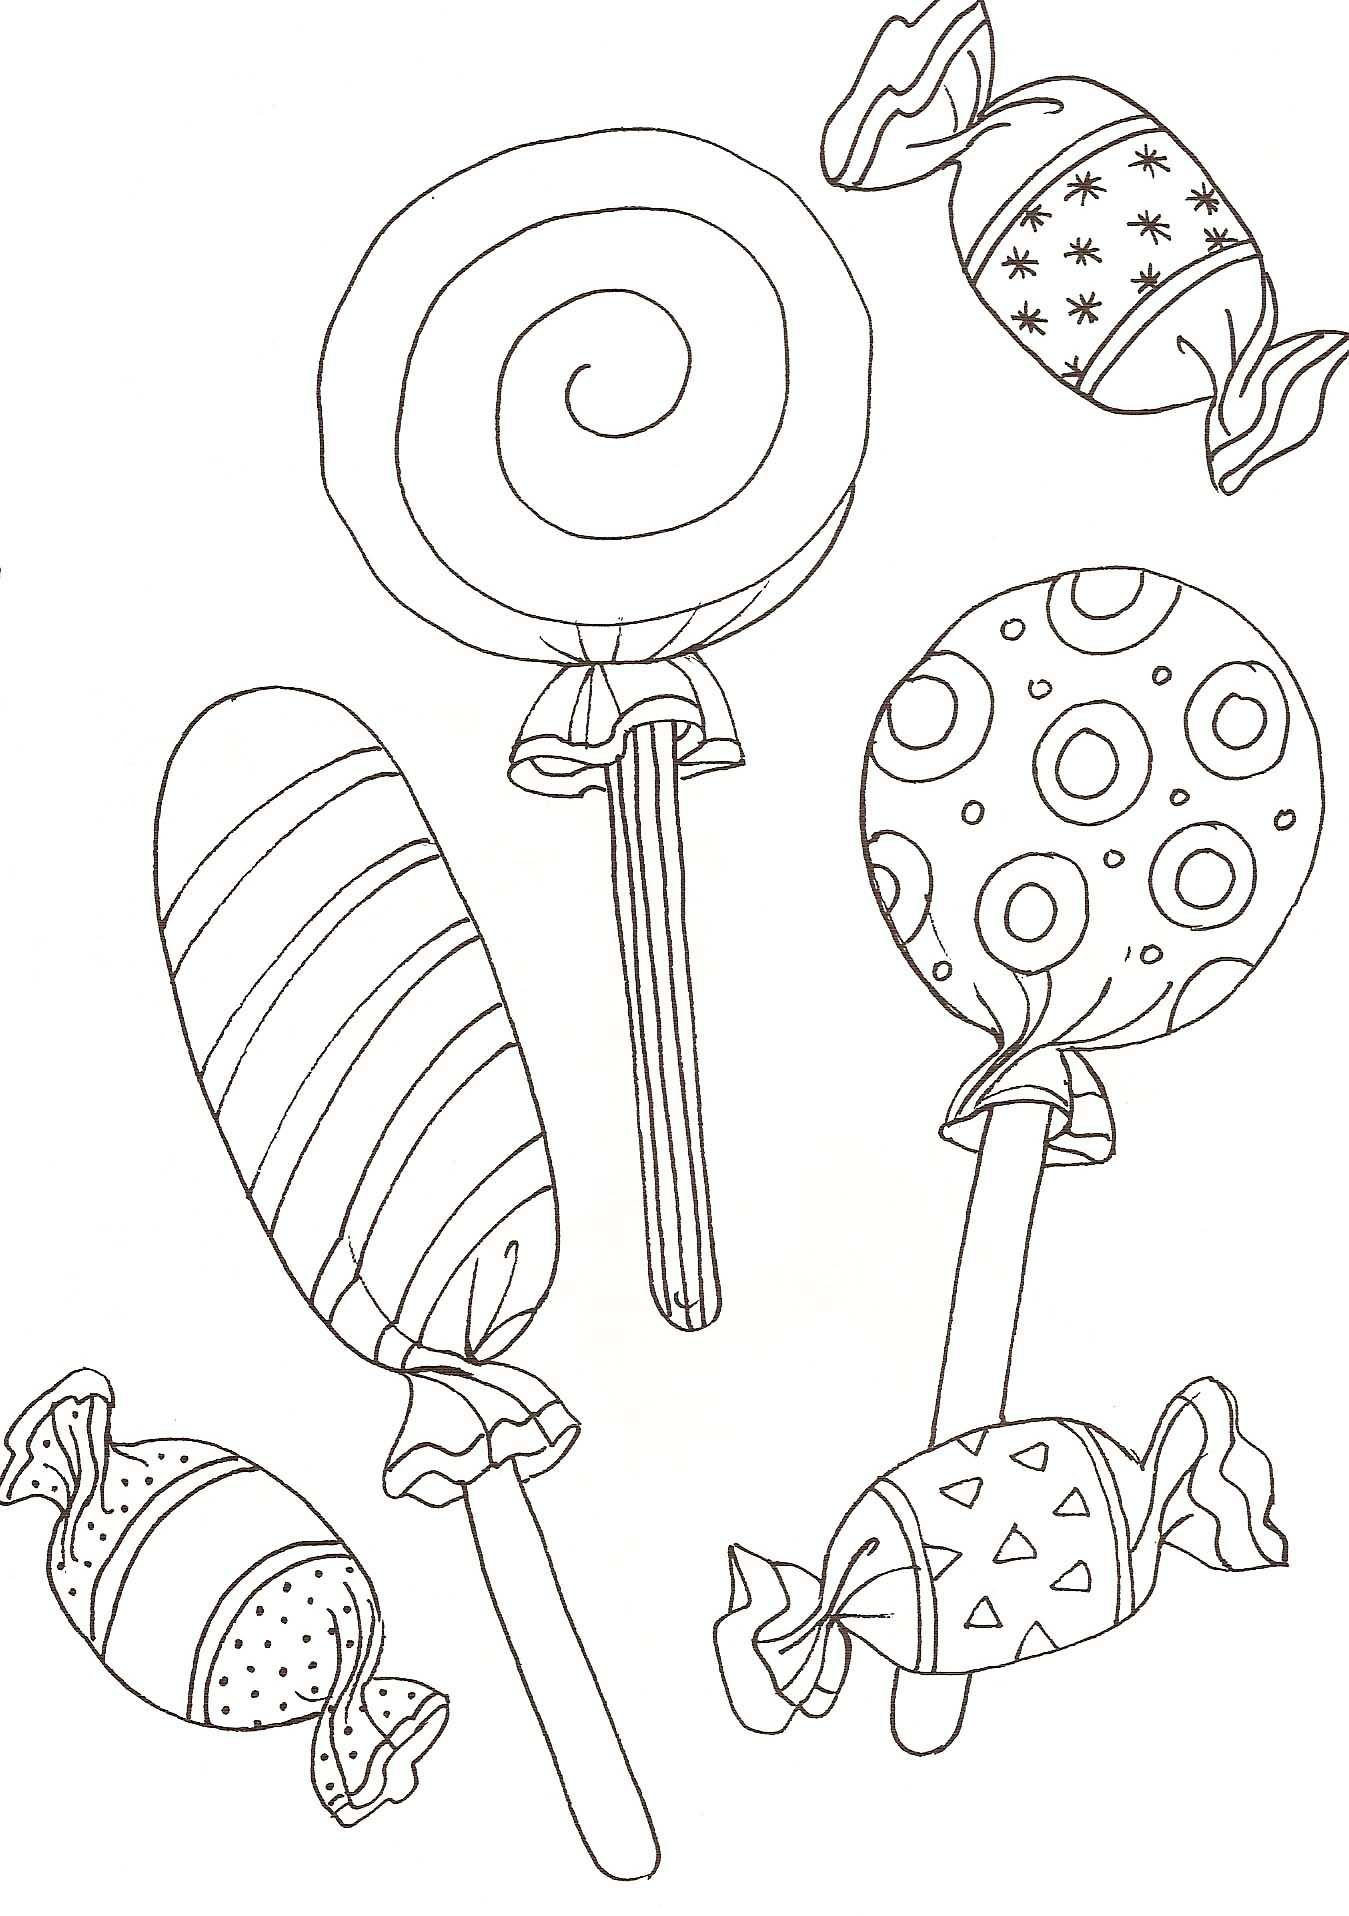 Nice Christmas Coloring Pages Cute Cool Christmas Coloring Pages